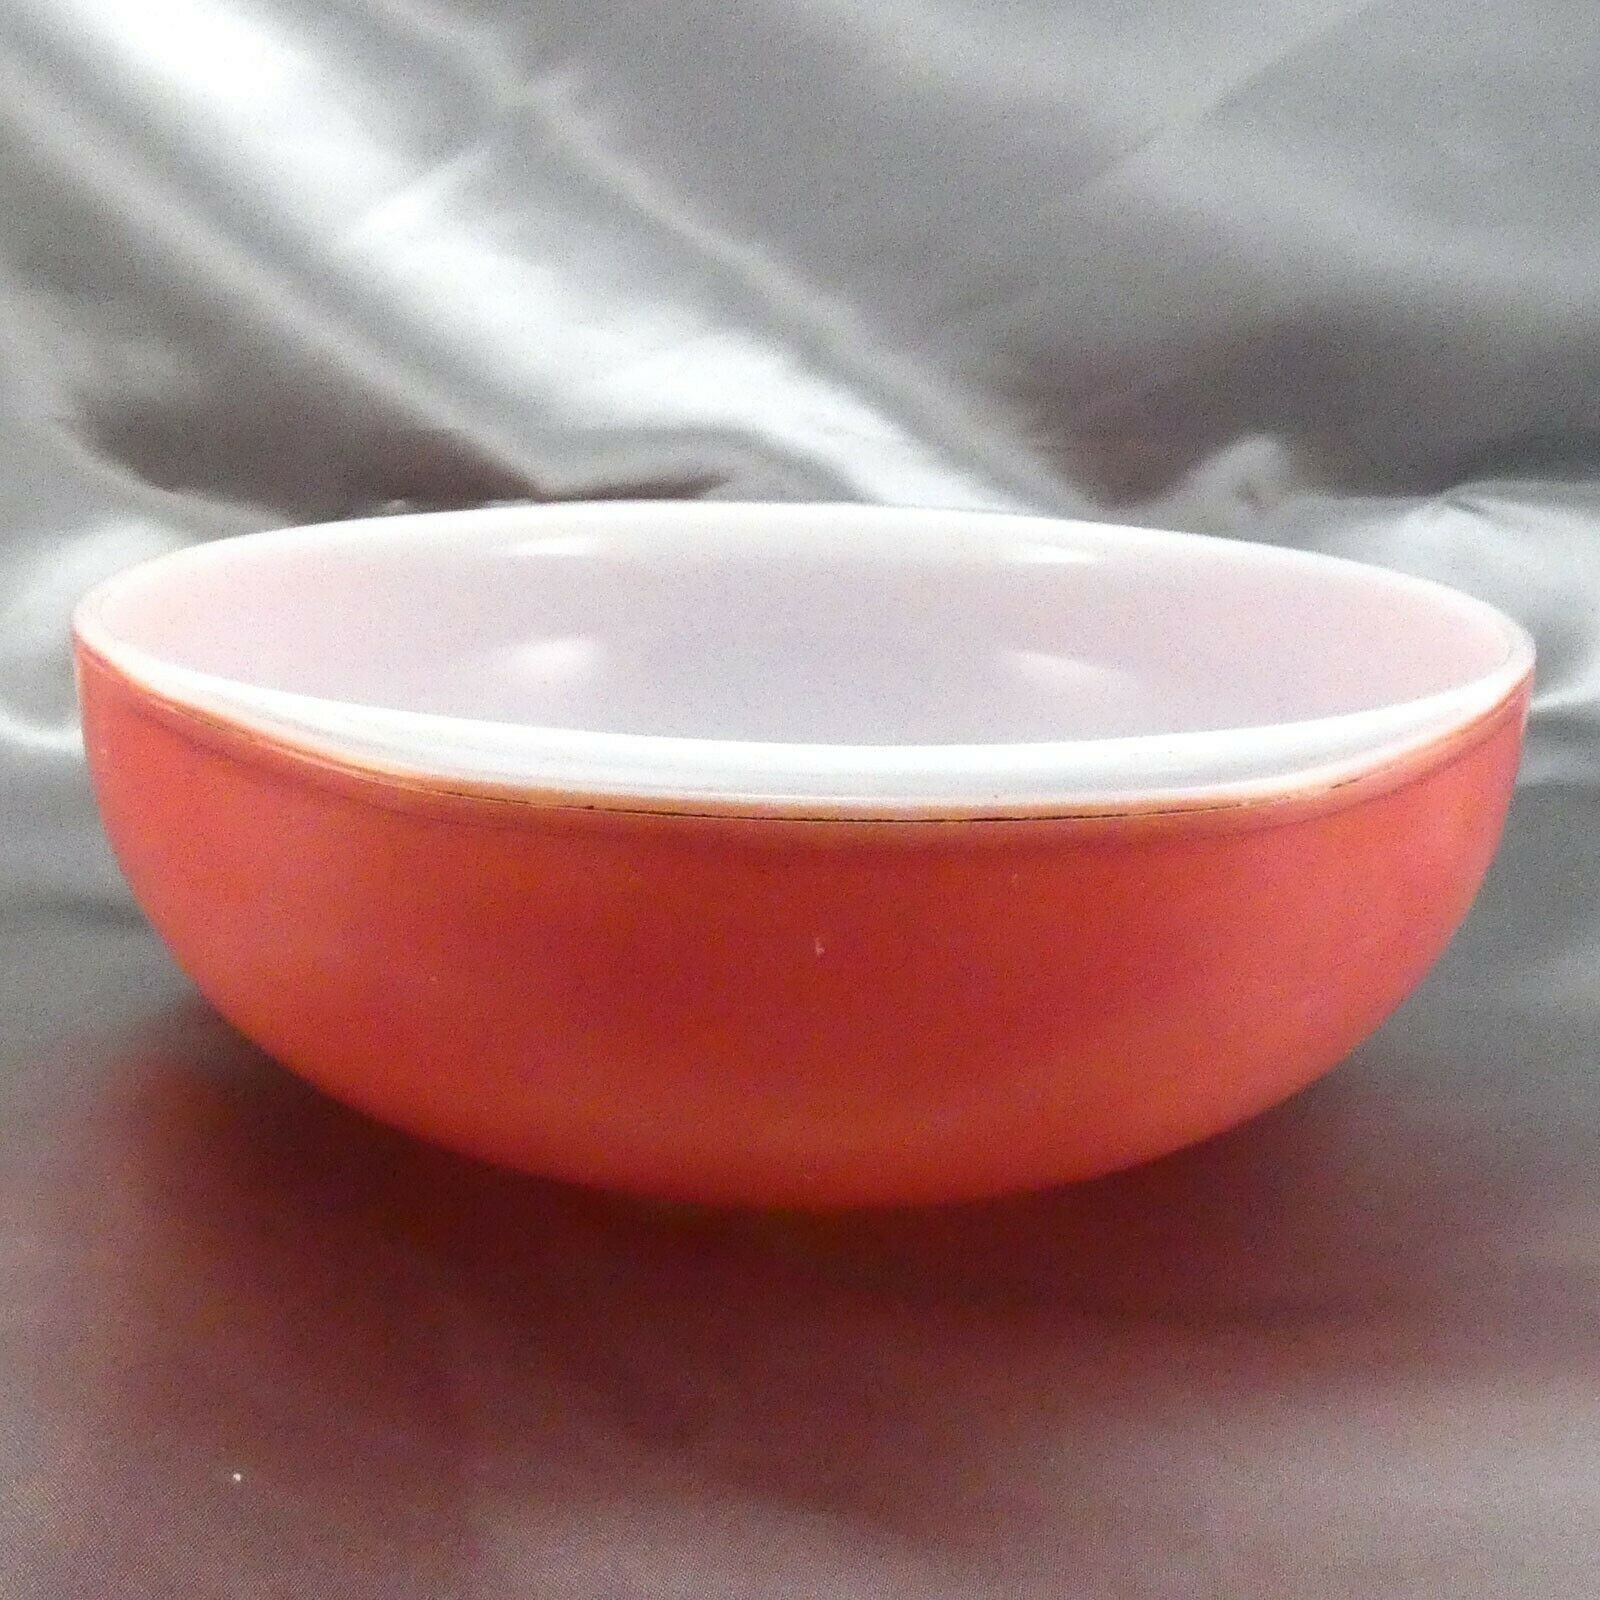 Pyrex 024 Pink Milk Glass Casserole Dish 2qt Serving Bowl ~ Made in the USA image 4